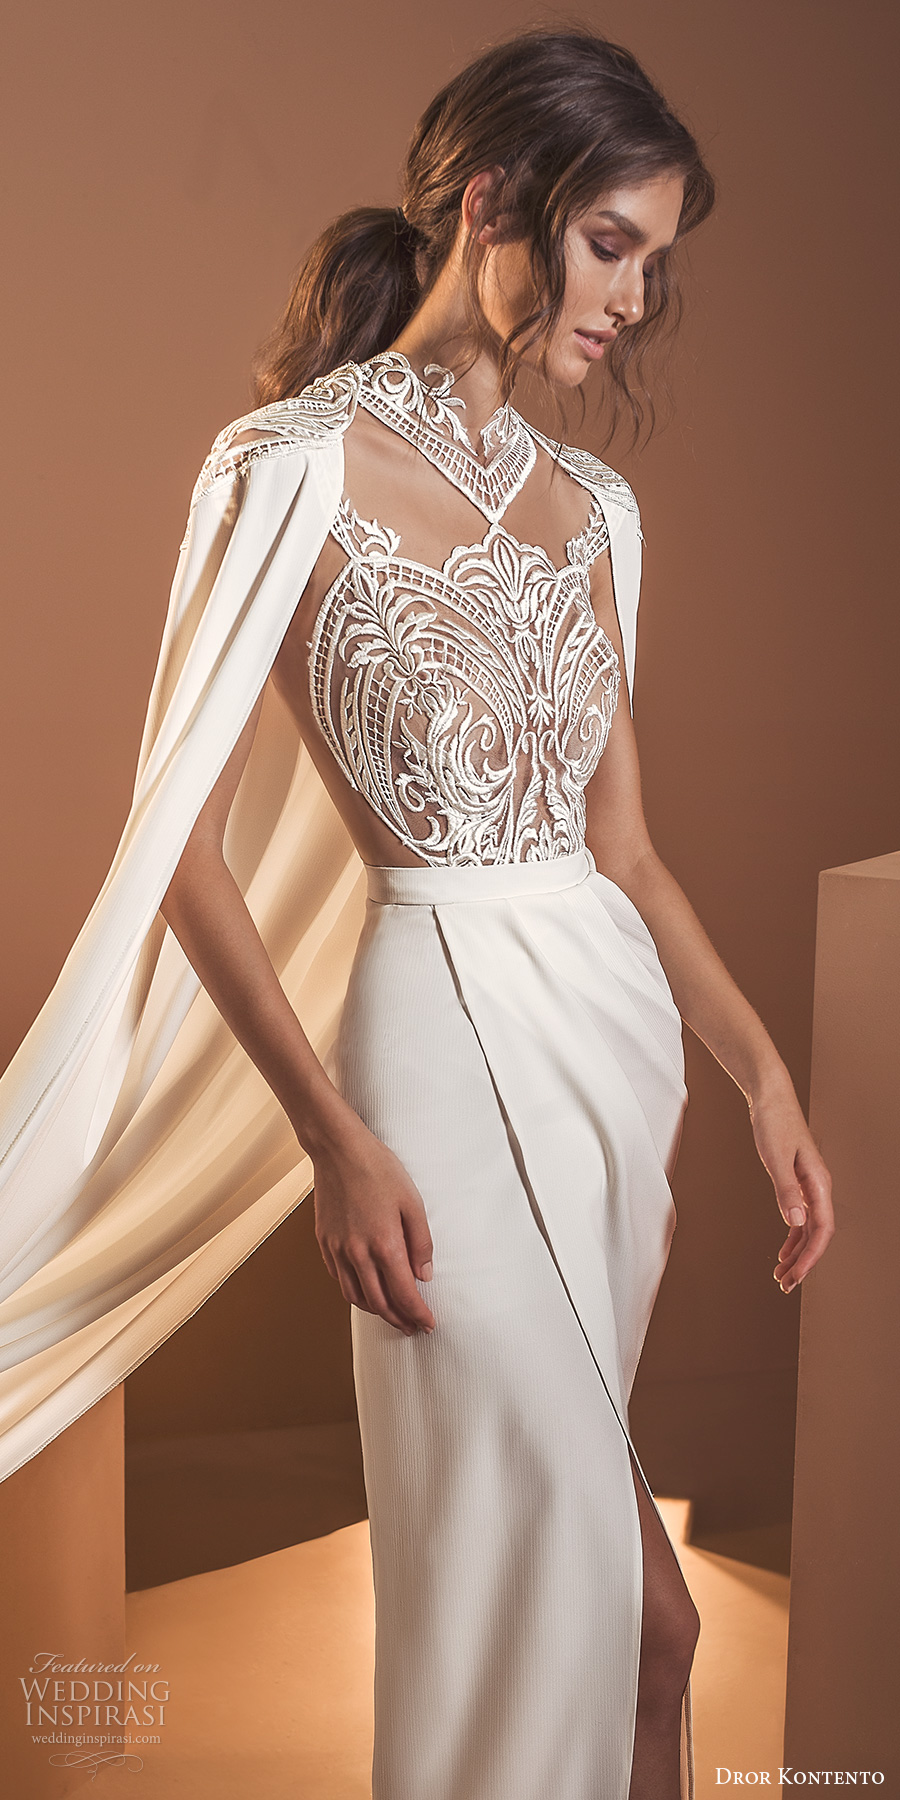 dror kontento 2020 bridal long cape sleeves high neckline embellished lace sheer bodice column sheath wedding dress with cape slit skirt chapel train (6) zv